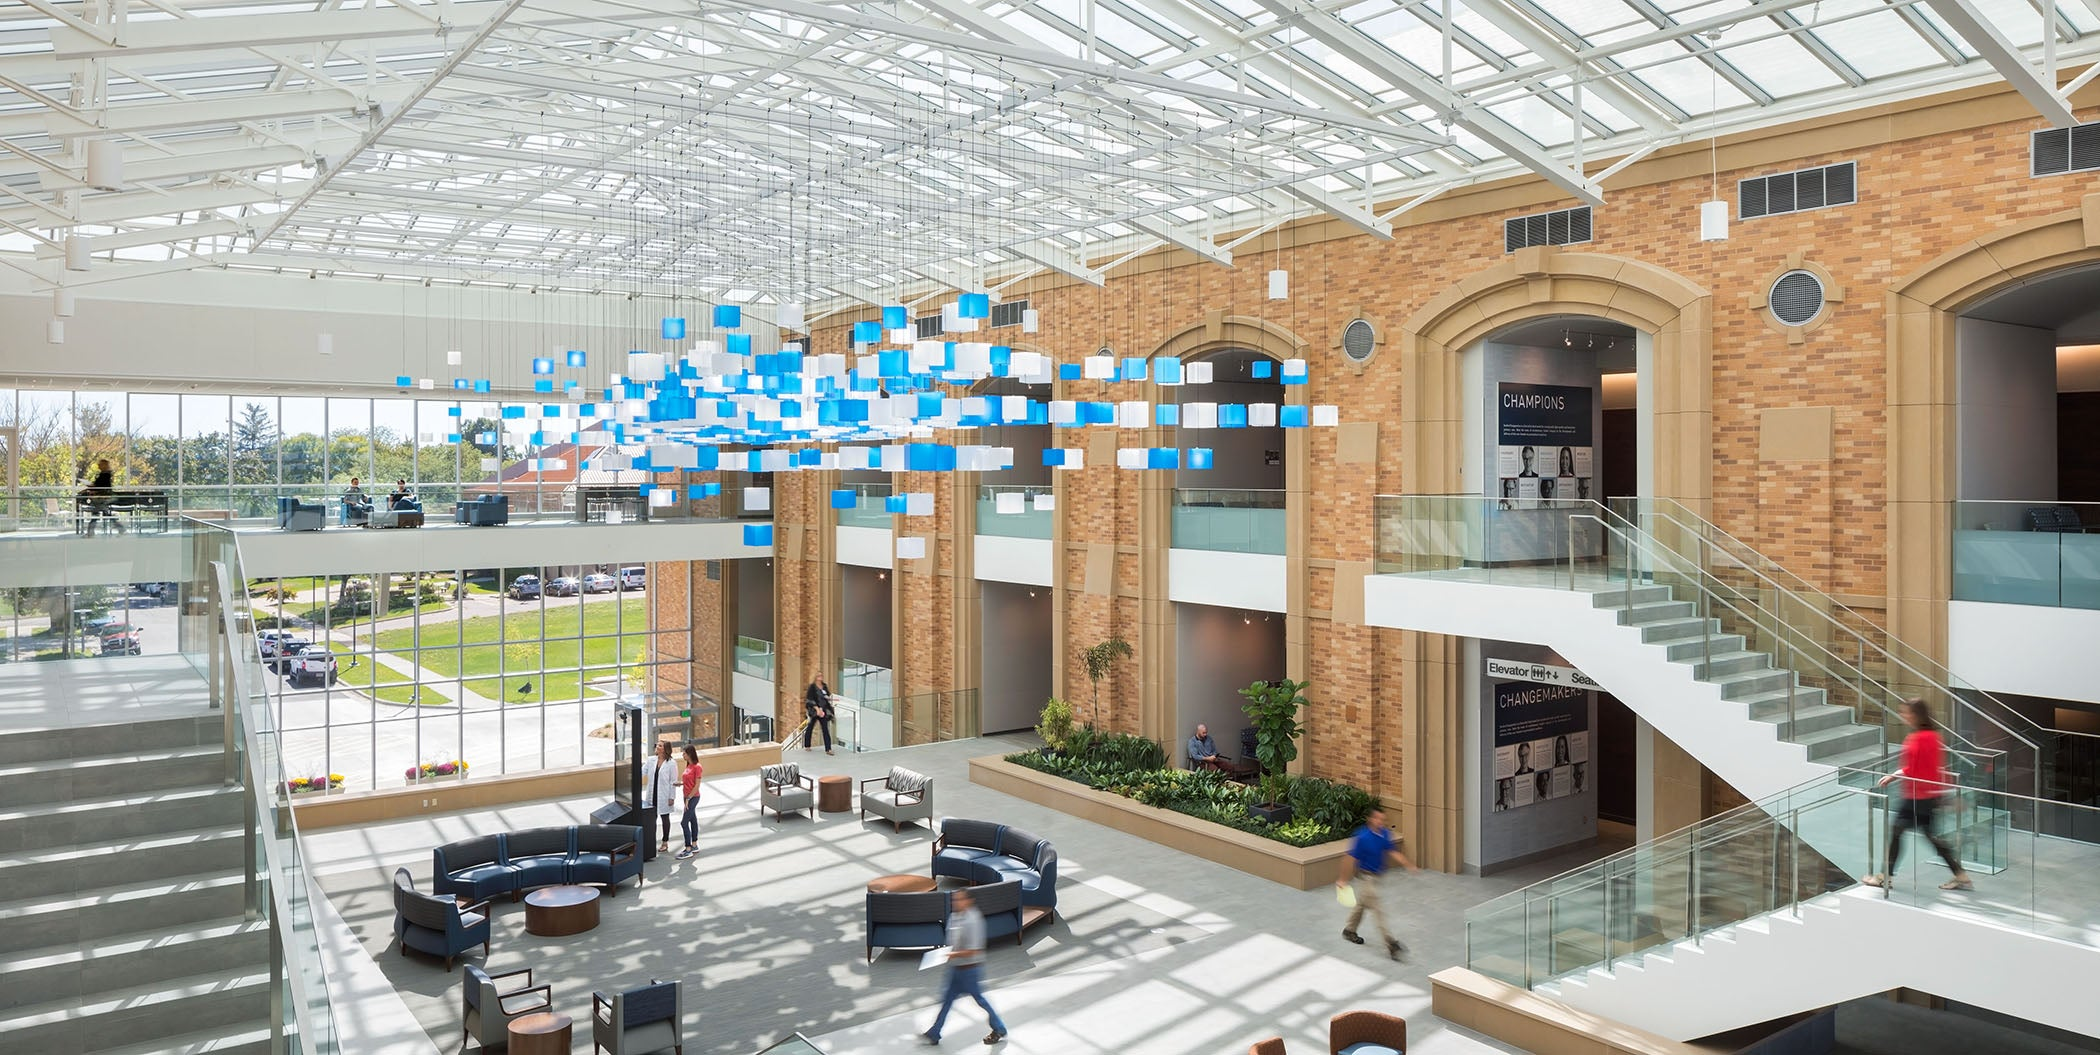 Healthcare Design Awards Six Hdr Projects In Design